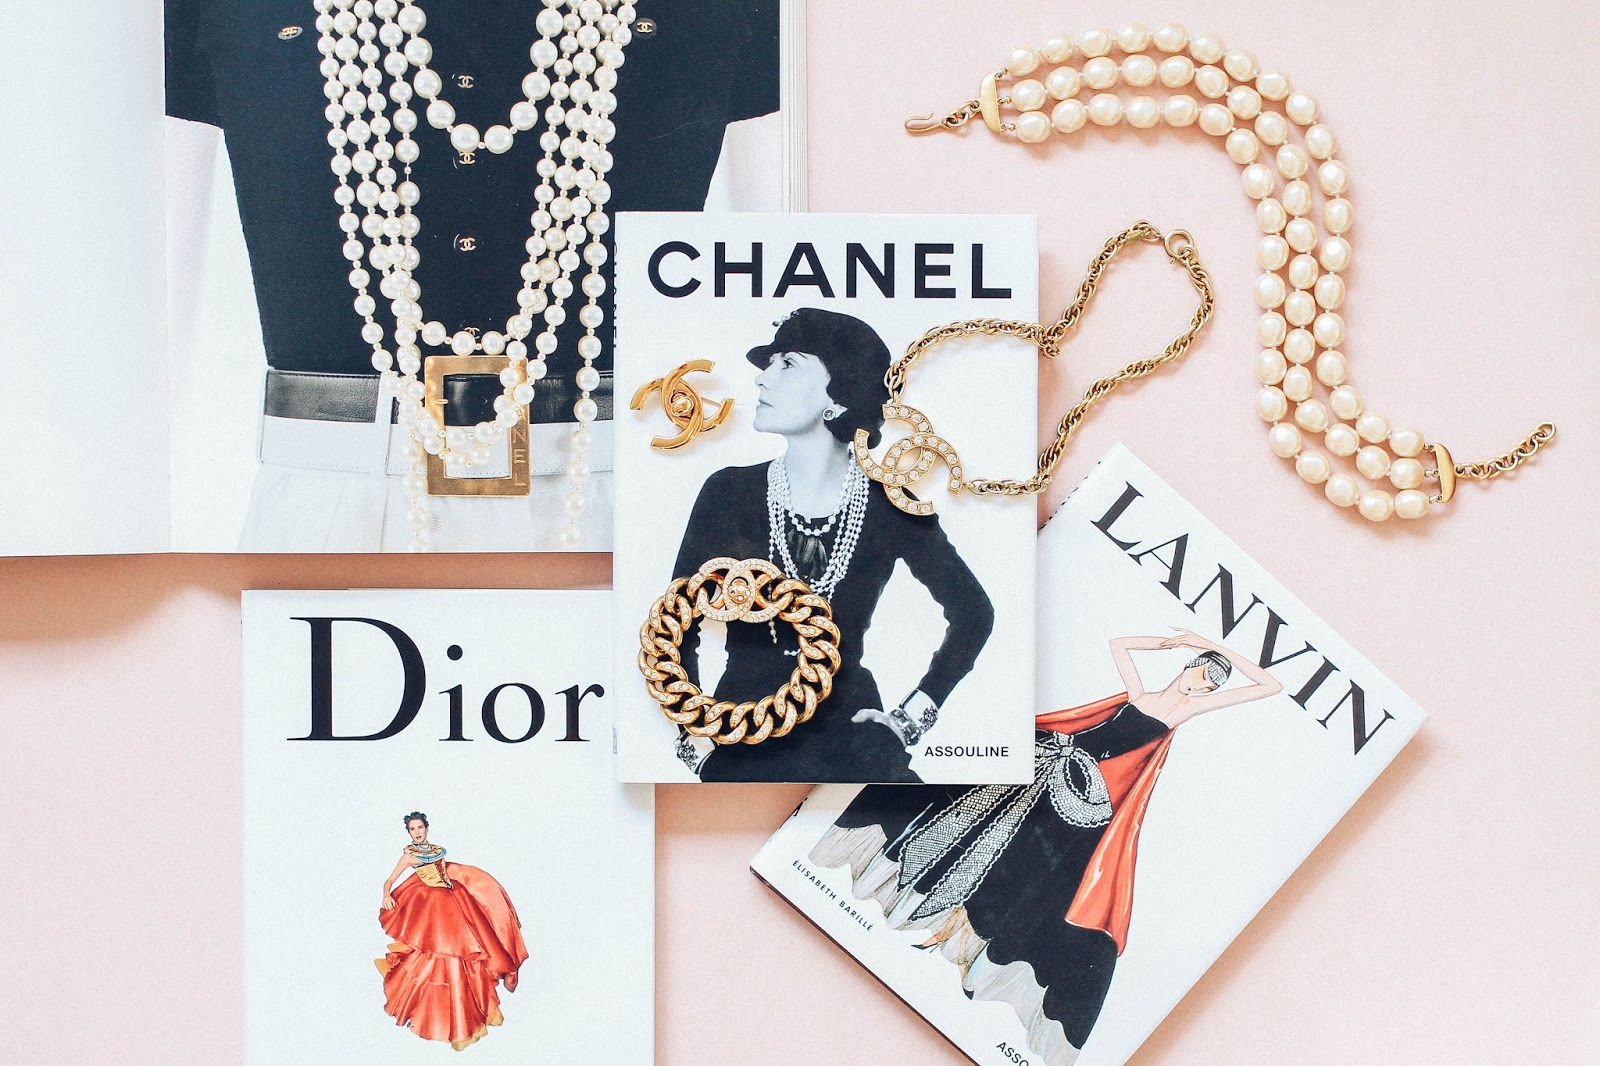 How to style vintage chanel jewelry emilee anne - Vintage chanel ...